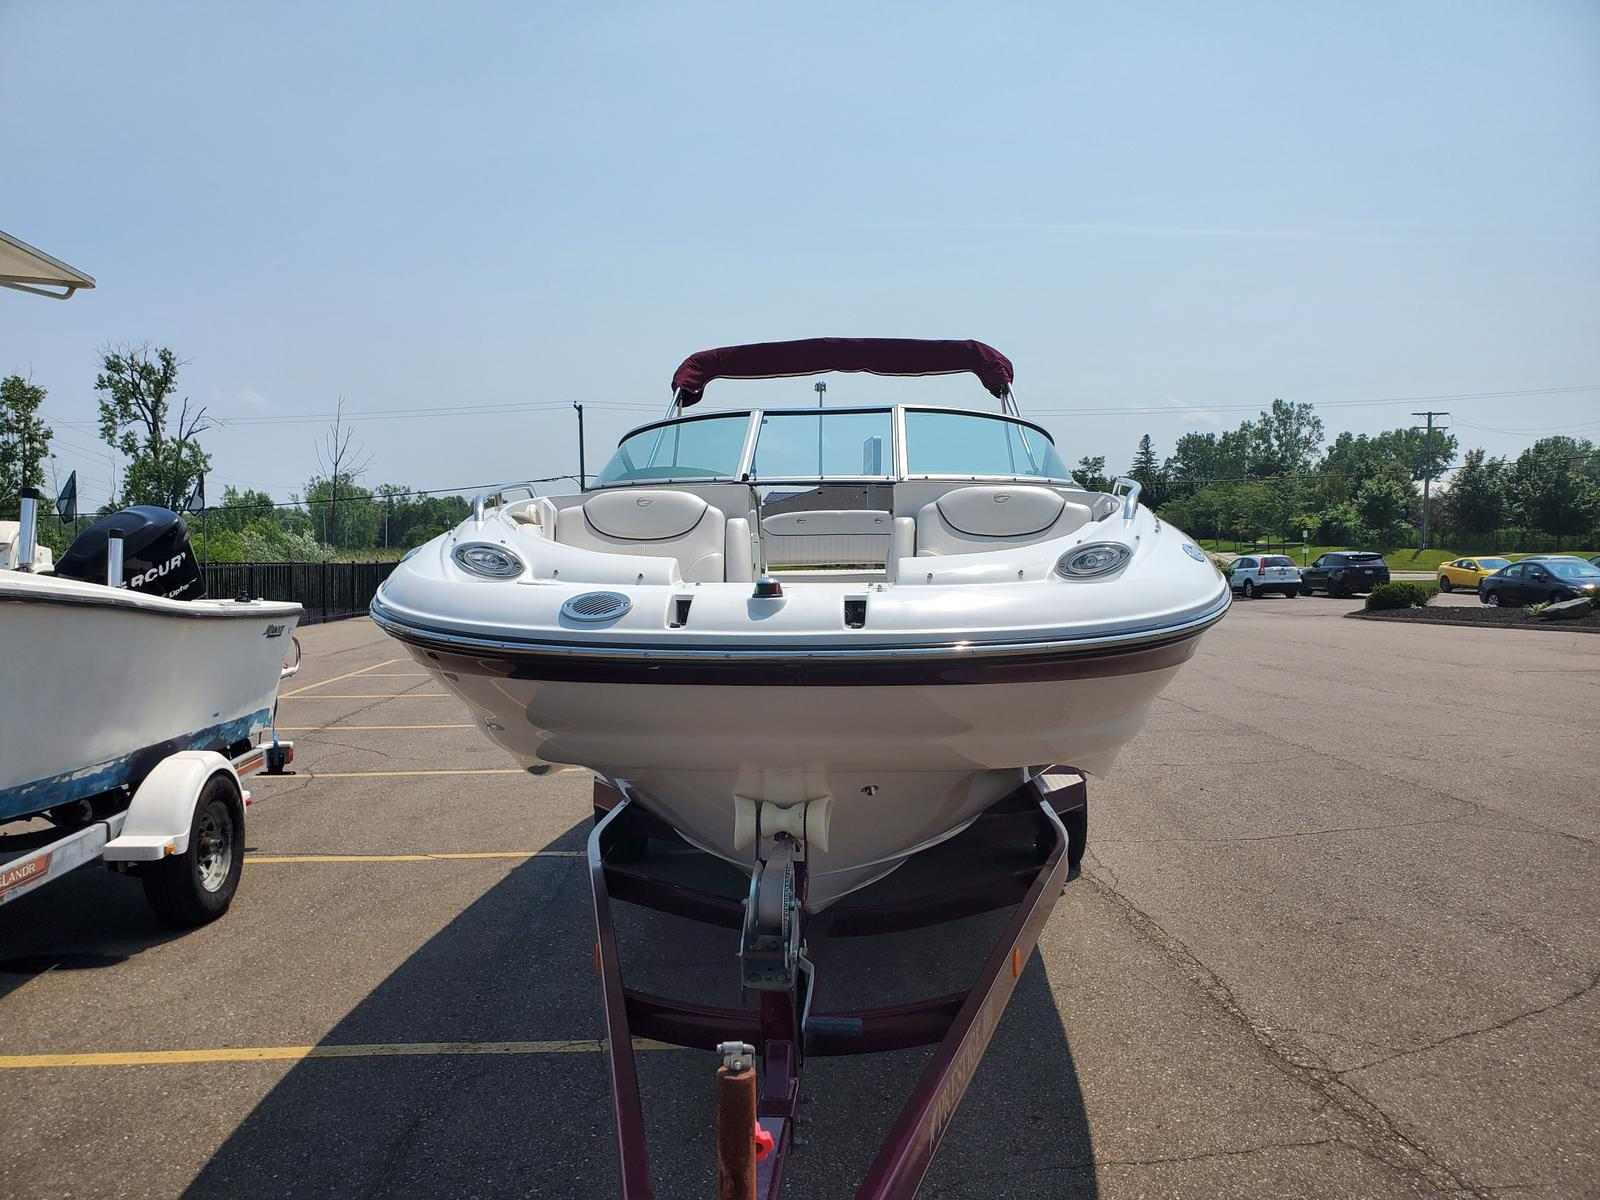 2004 Crownline boat for sale, model of the boat is Deck Boat 240 EX & Image # 4 of 12